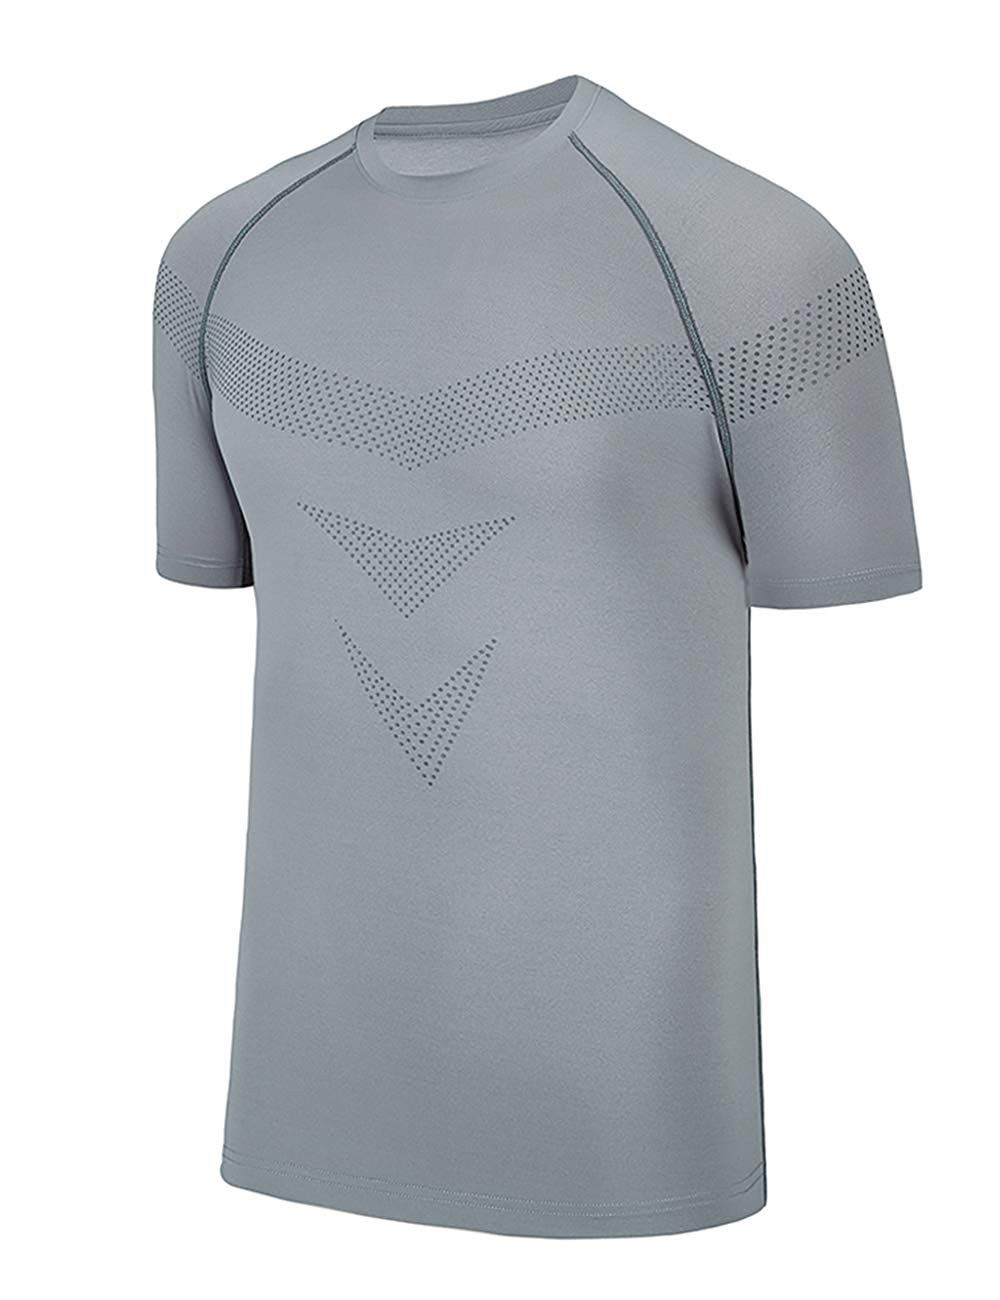 Cool Compression Men Sport Quick Dry Running Gym Fitness Short Sleeves for Man